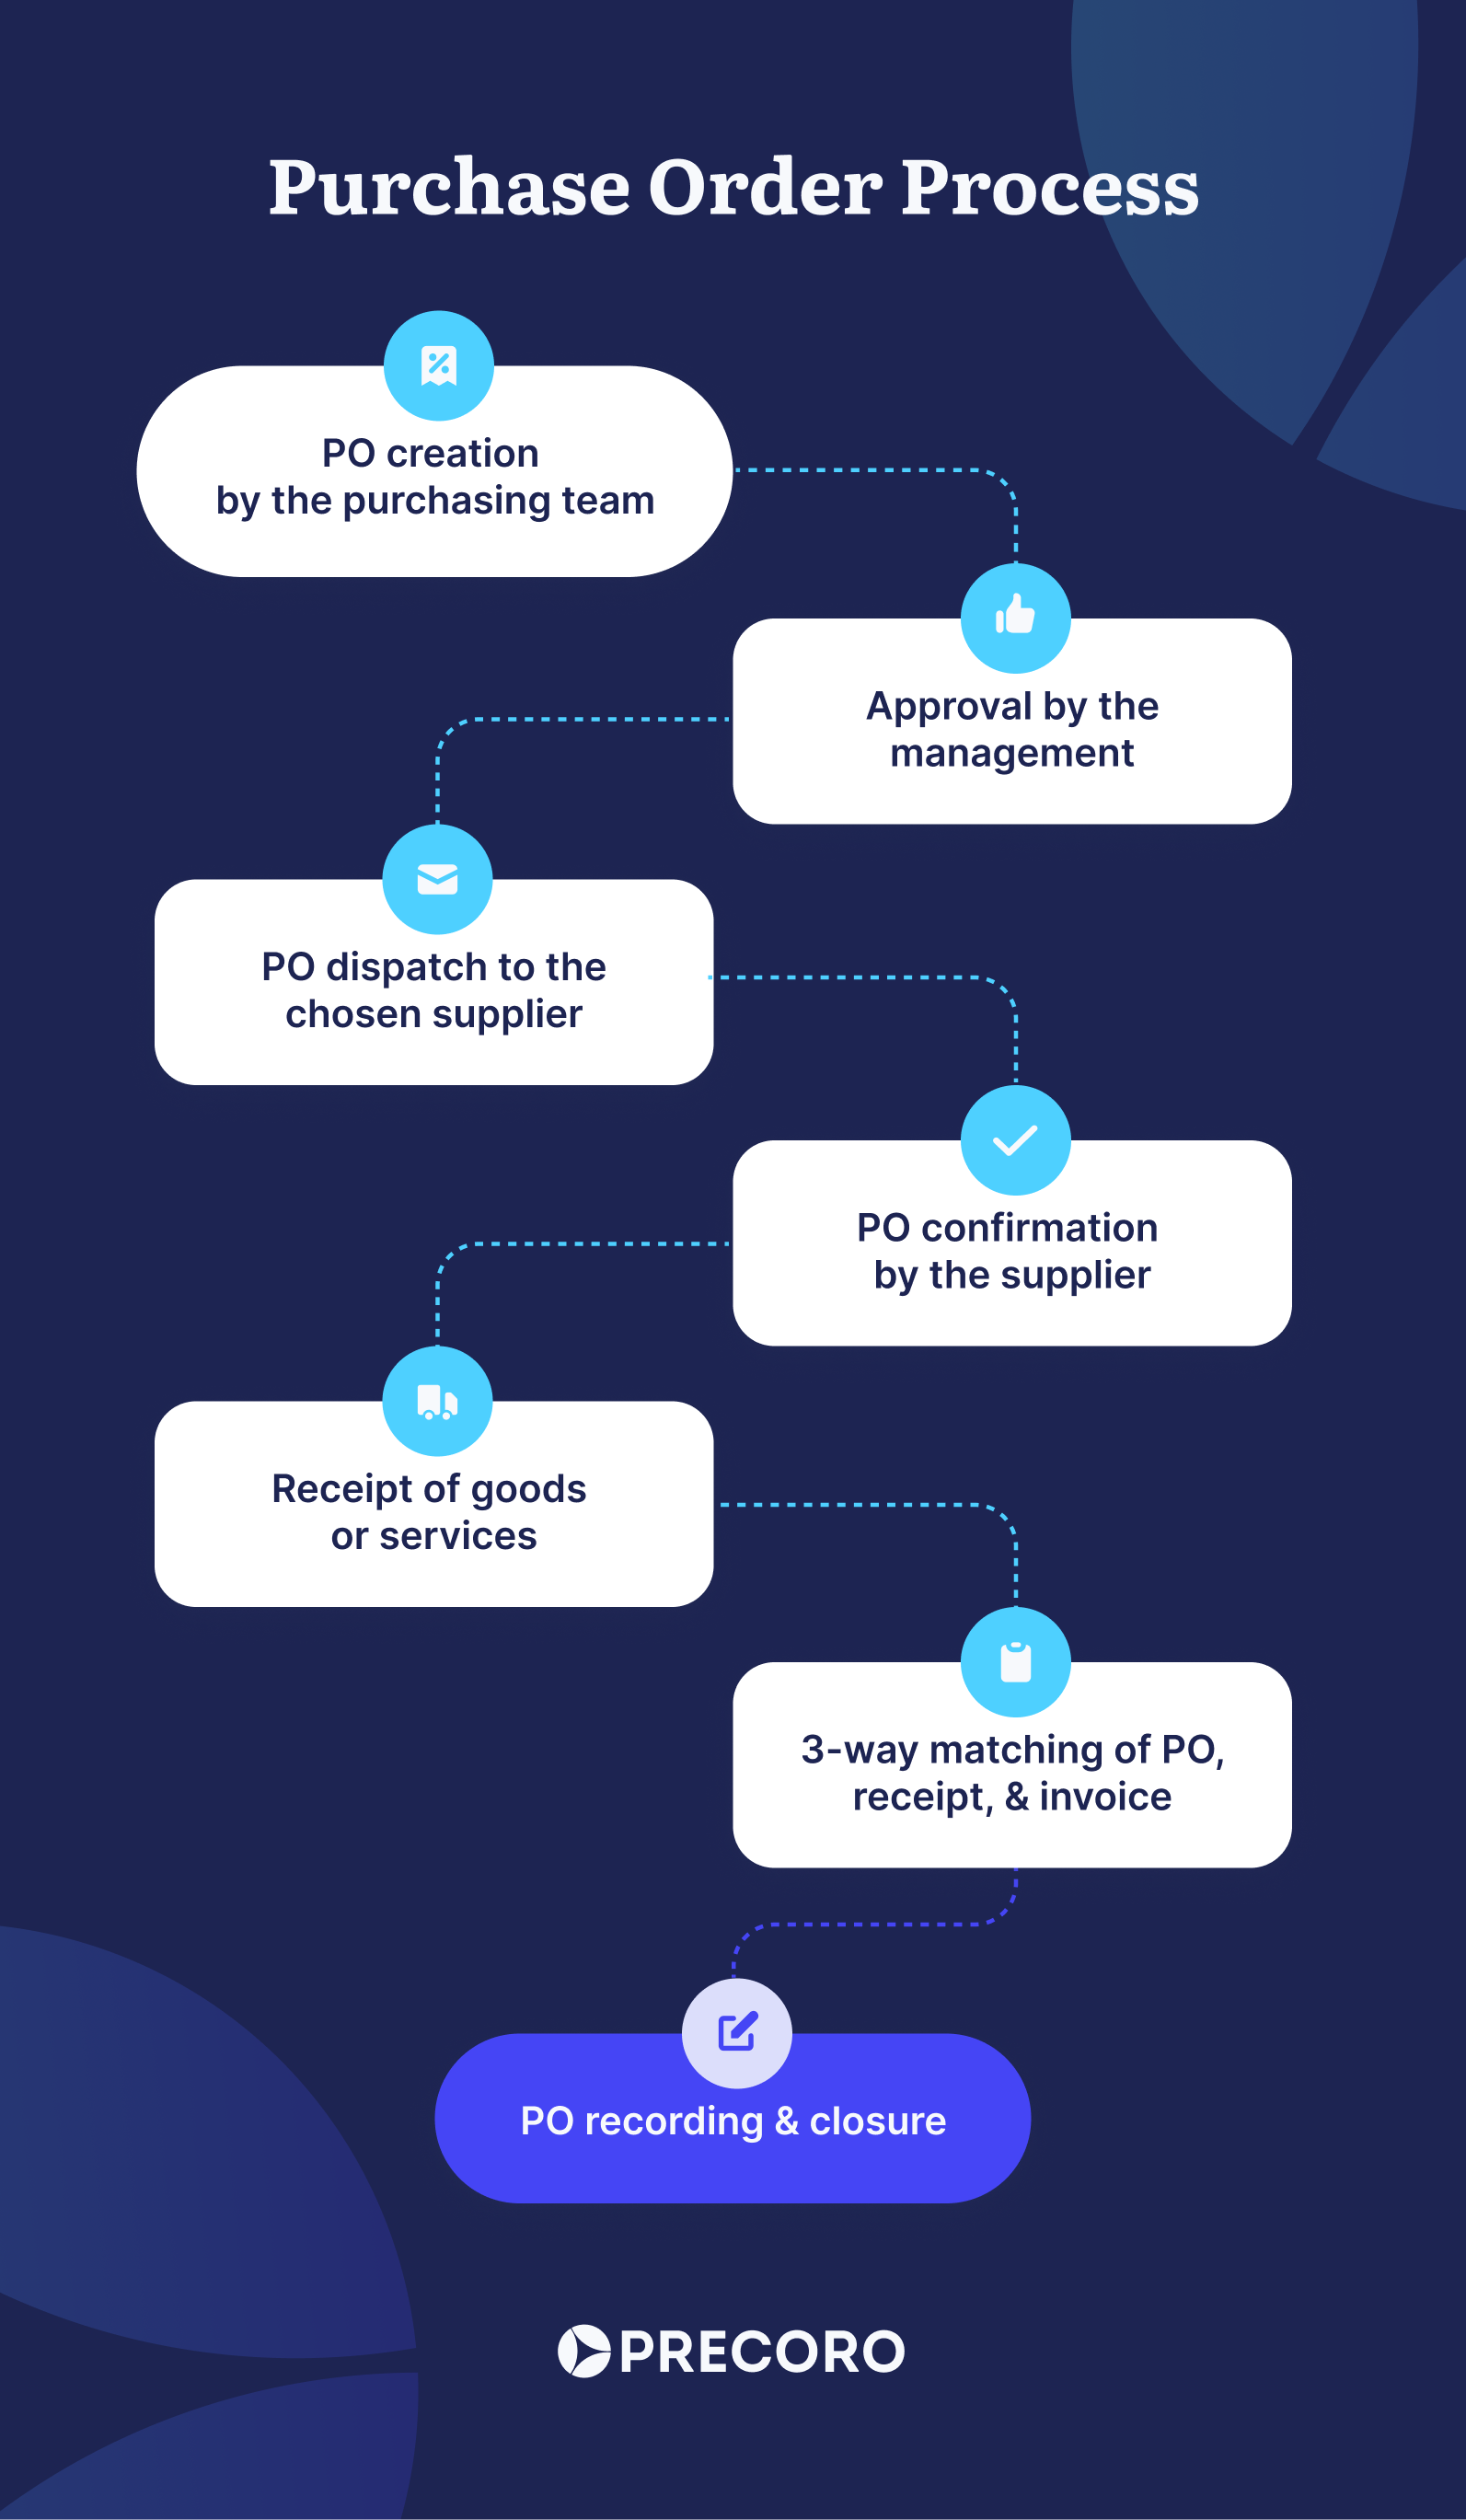 purchase order process steps flowchart